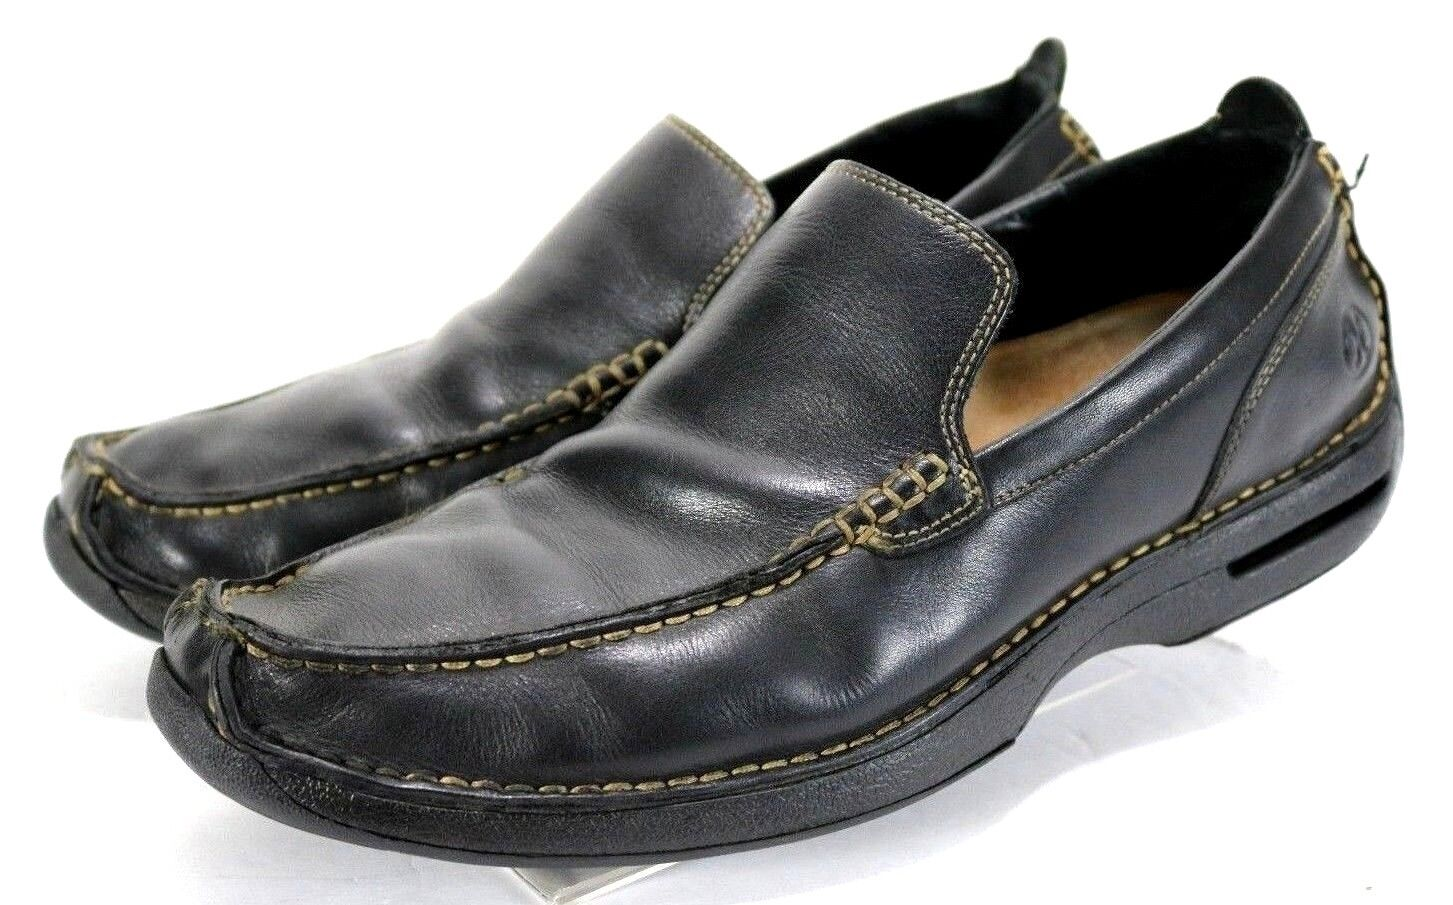 Cole Haan NIK Air Men's  150 Driving Loafers shoes Size 11 Leather Black